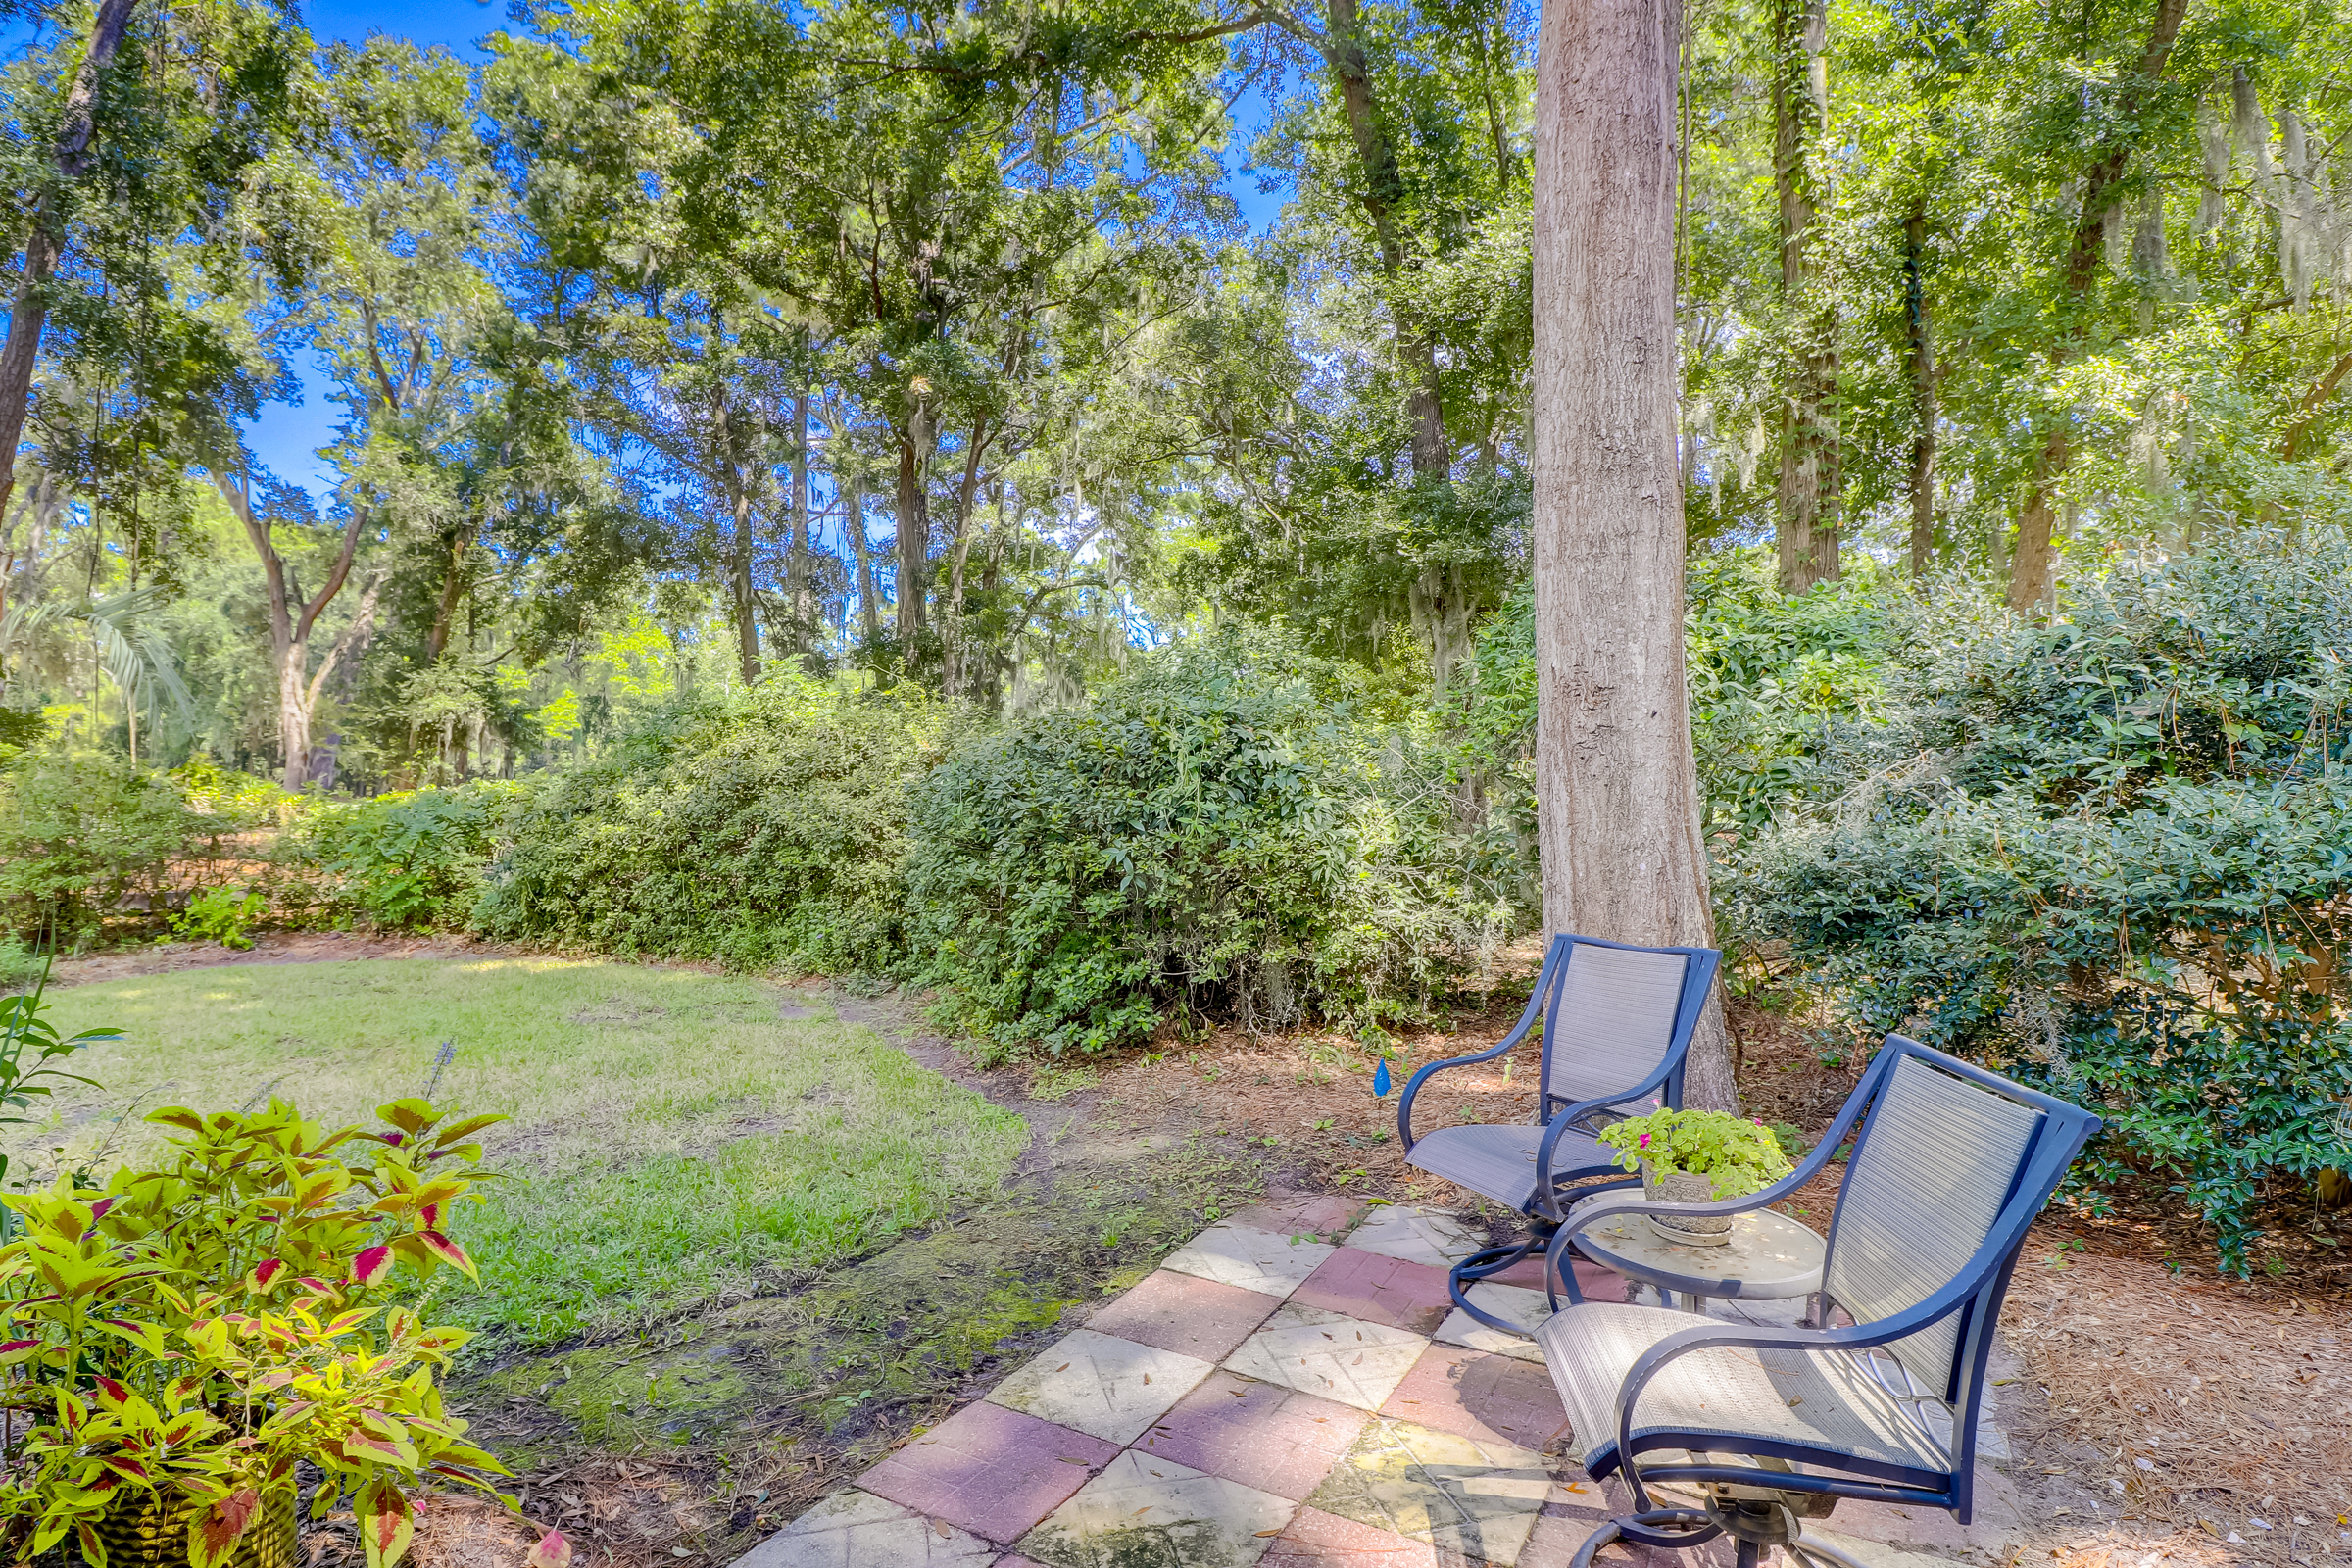 The large backyard would allow room for a pool as well as any other outdoor upgrades you would like to make.  It is like living in a park on the golf course.  Lush landscaping, mature trees and privacy make this a special place to relax.